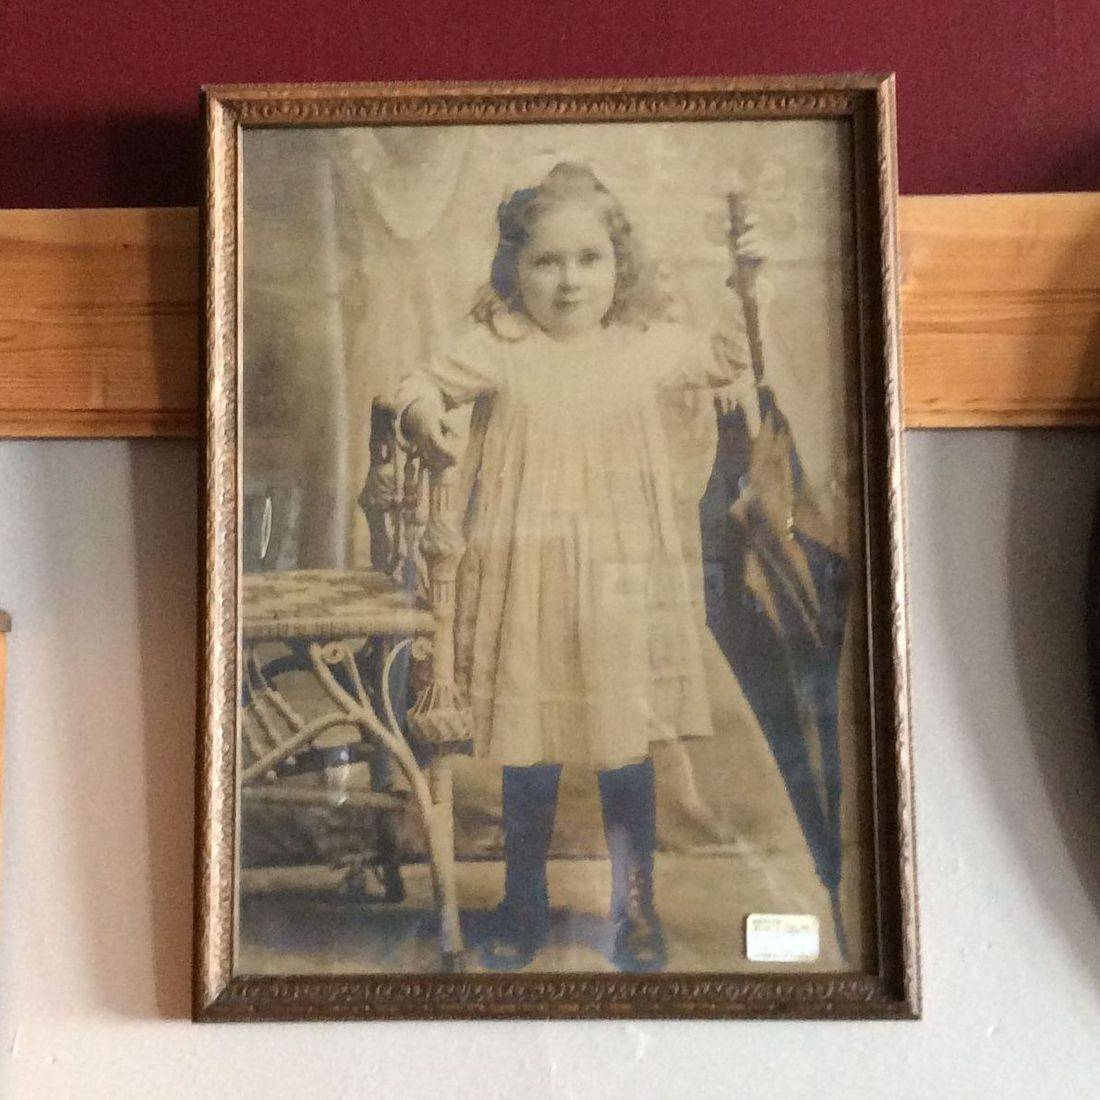 "Early 1900's Picture of Young Girl w/Umbrella  15-1/2"" x 20-1/2"" Frame   $35.00"